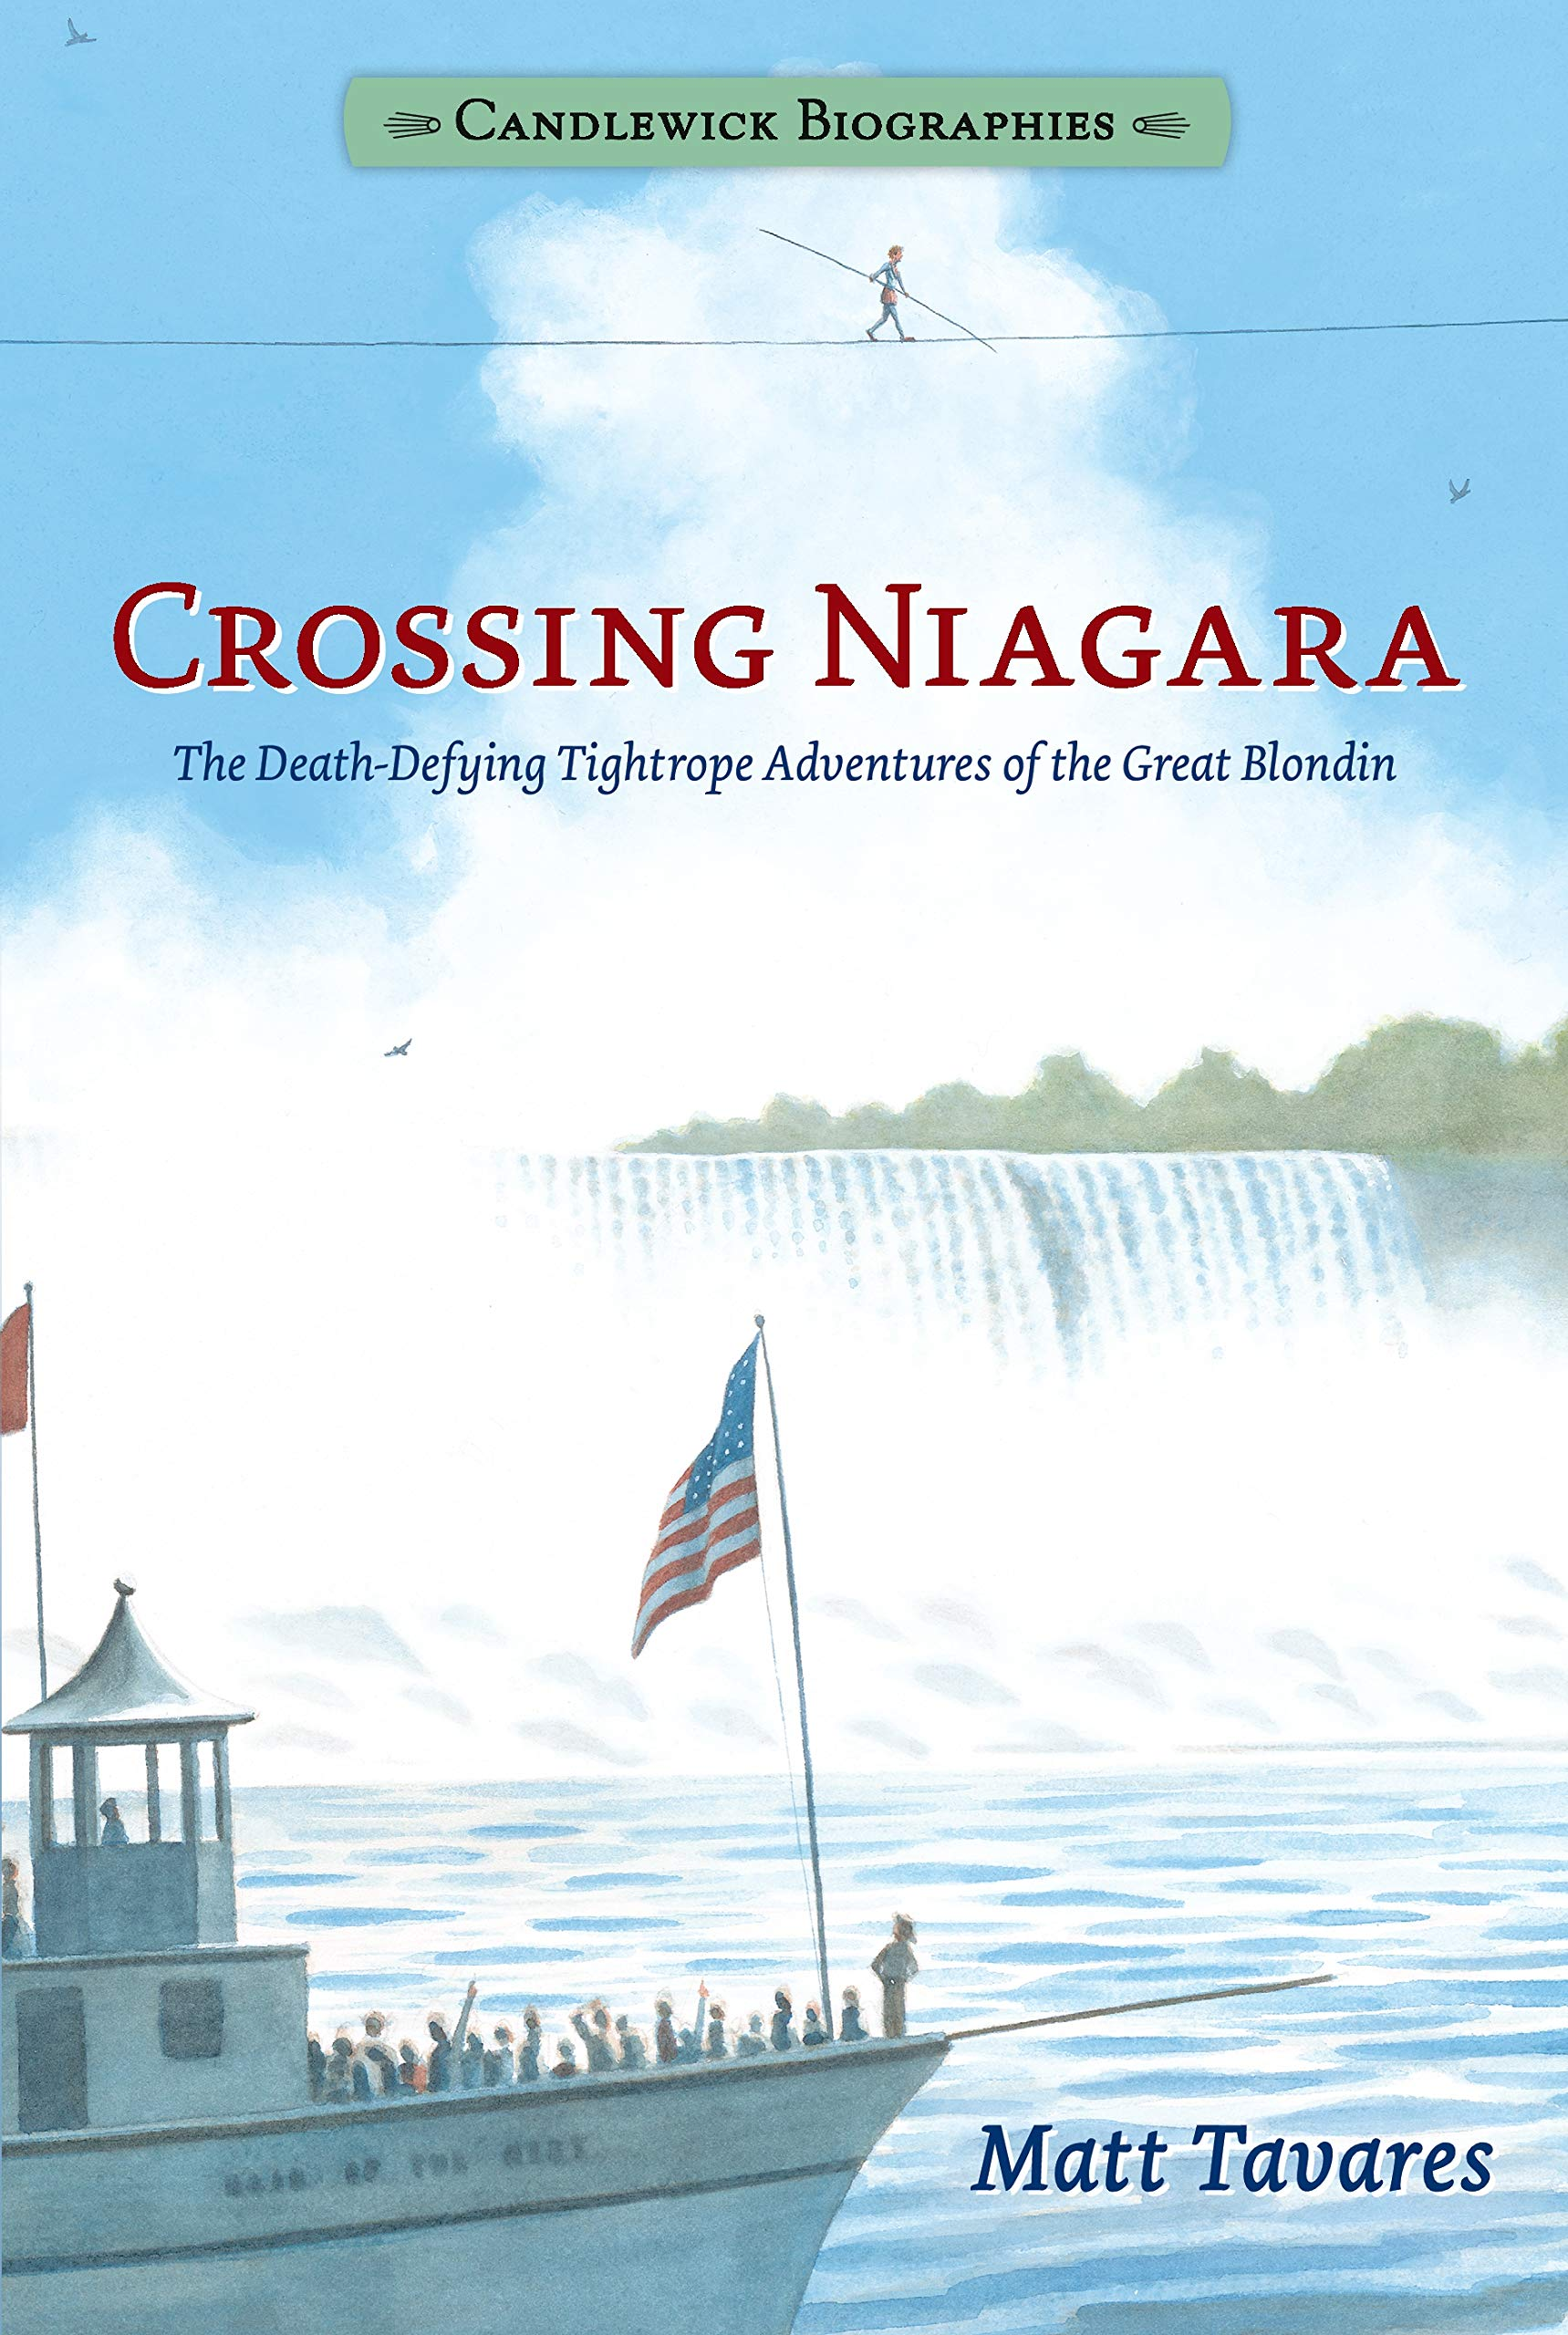 Crossing Niagara: Candlewick Biographies: The Death-Defying Tightrope Adventures of the Great Blondin pdf epub